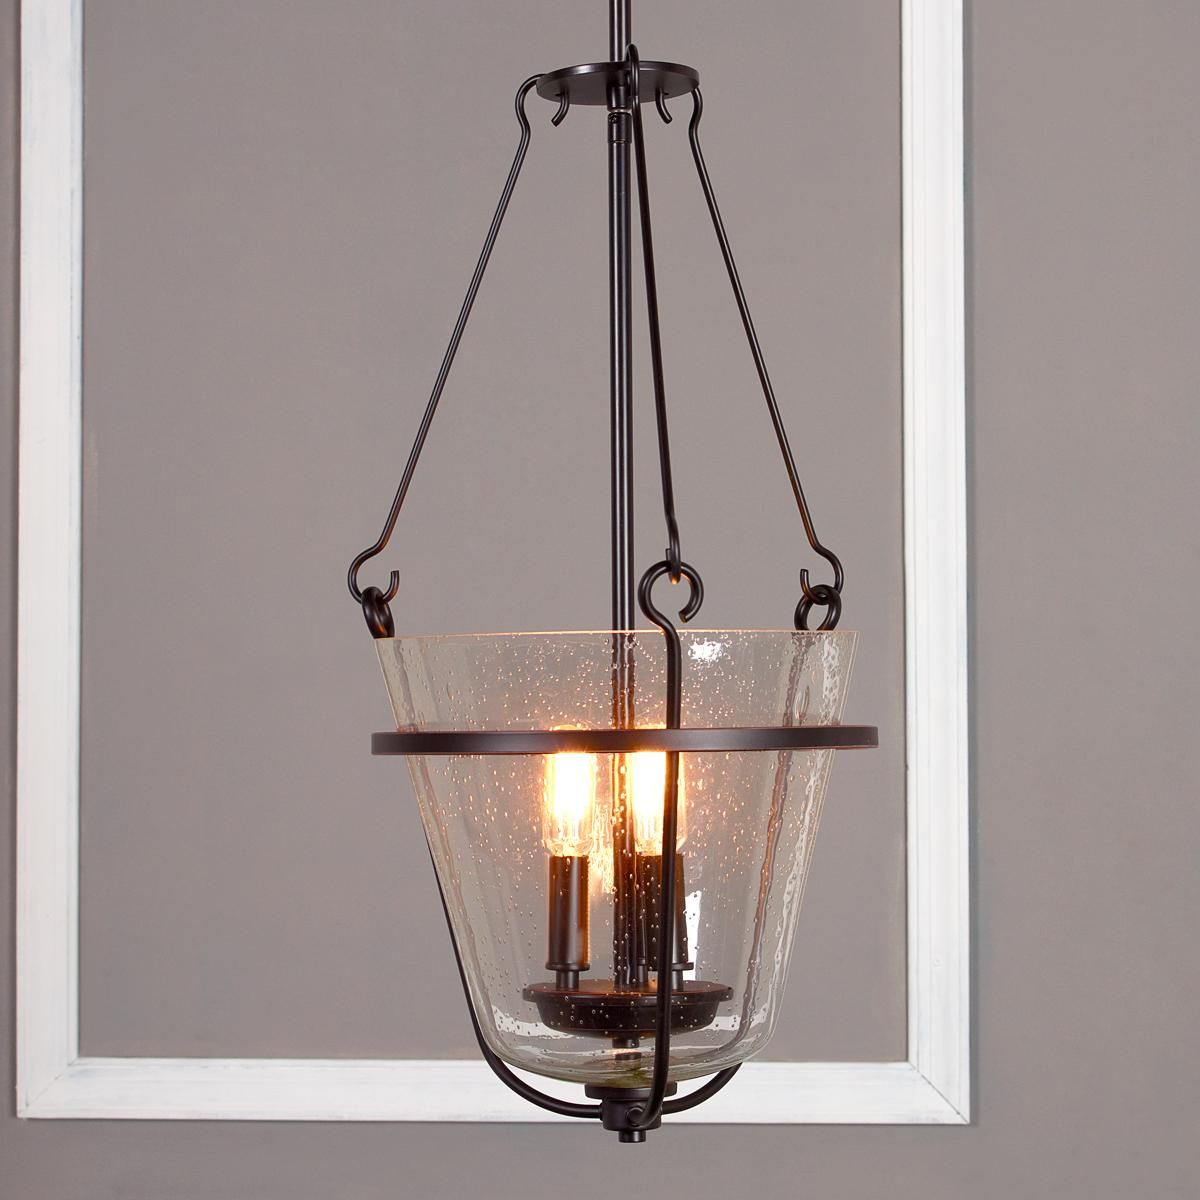 Seeded Glass Lantern This Seeded Glass Bell Lantern Is Cradled In A Deep Rubbed Bronze Frame